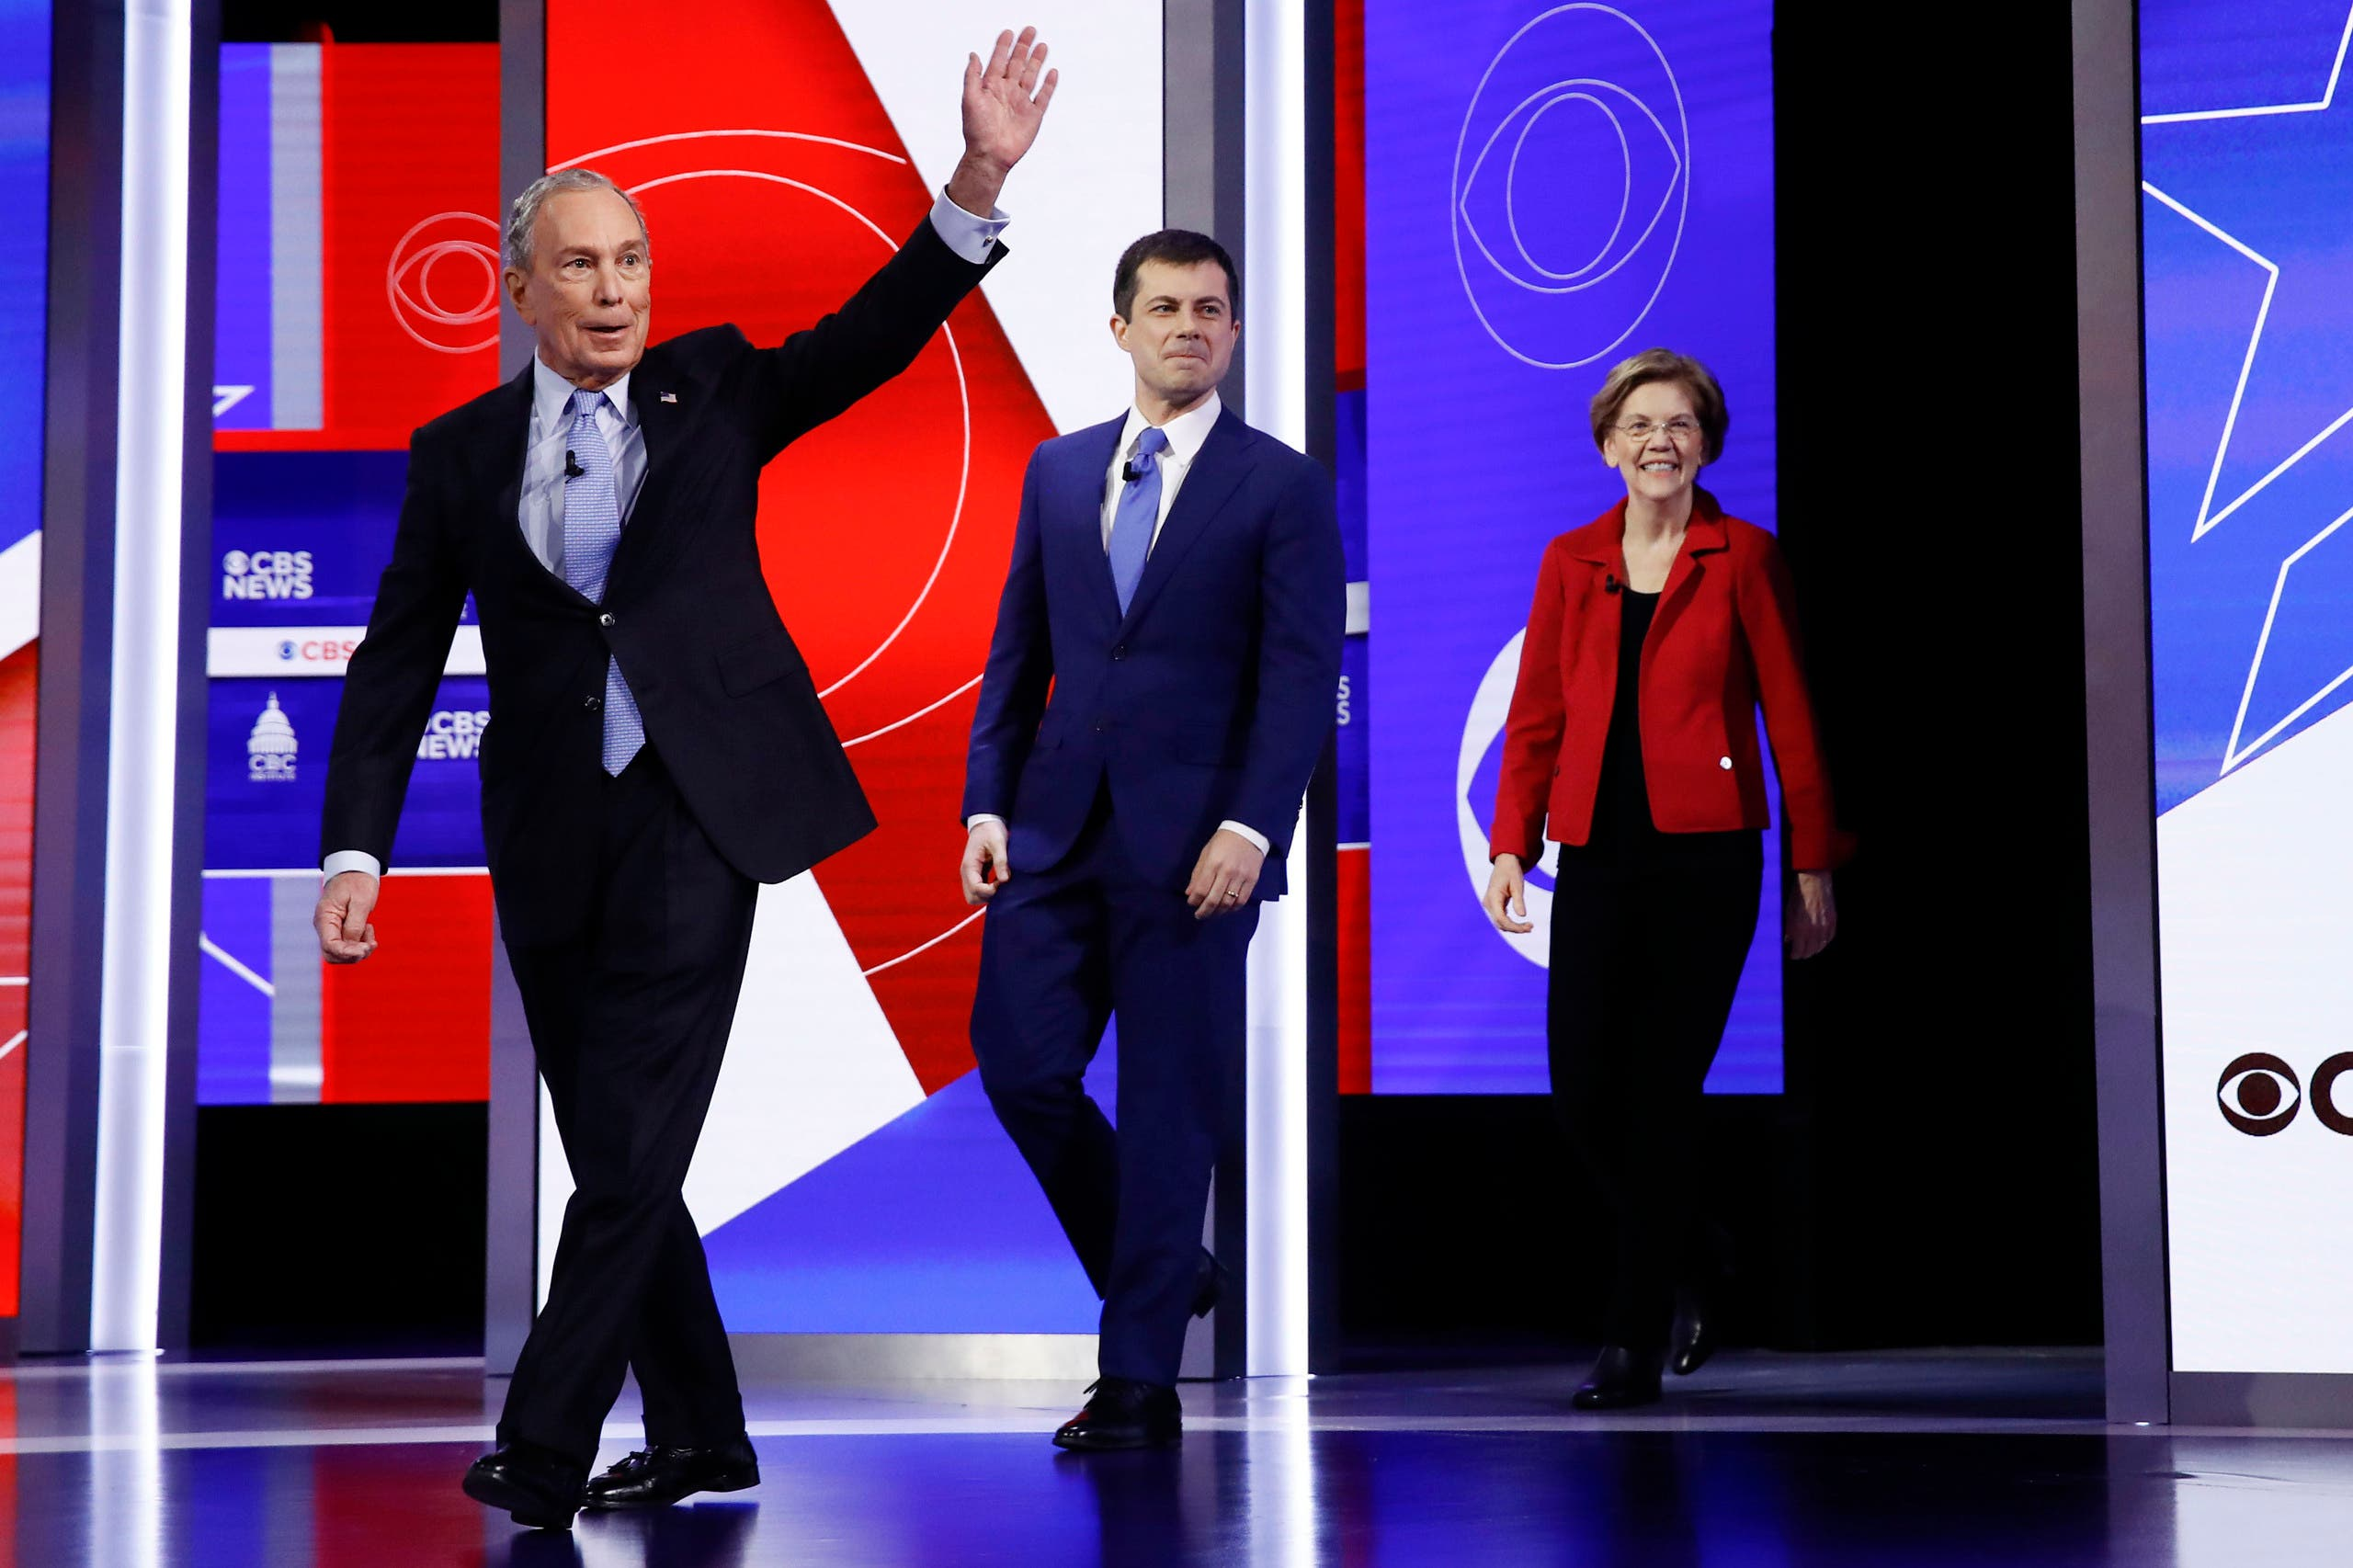 Democratic presidential candidate former New York City Mayor Mike Bloombergwalks onto the stage at the Democratic presidential primary debate on Feb. 25, 2020. (AP)